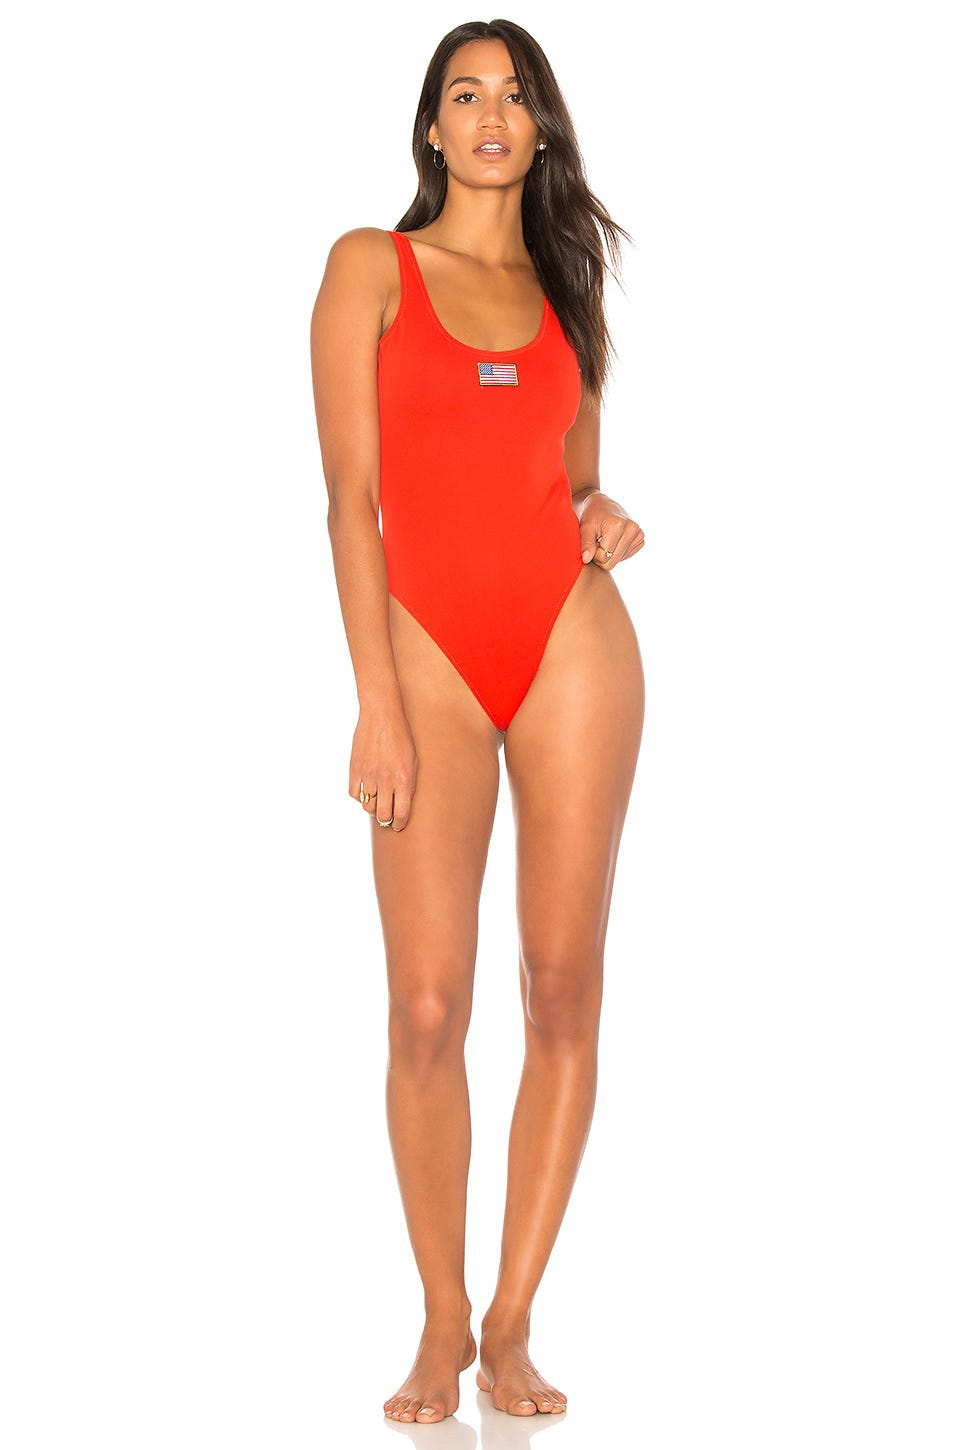 52ba602ca037a Kendall Kylie Jenner Swimsuit Collection Revolve Photos